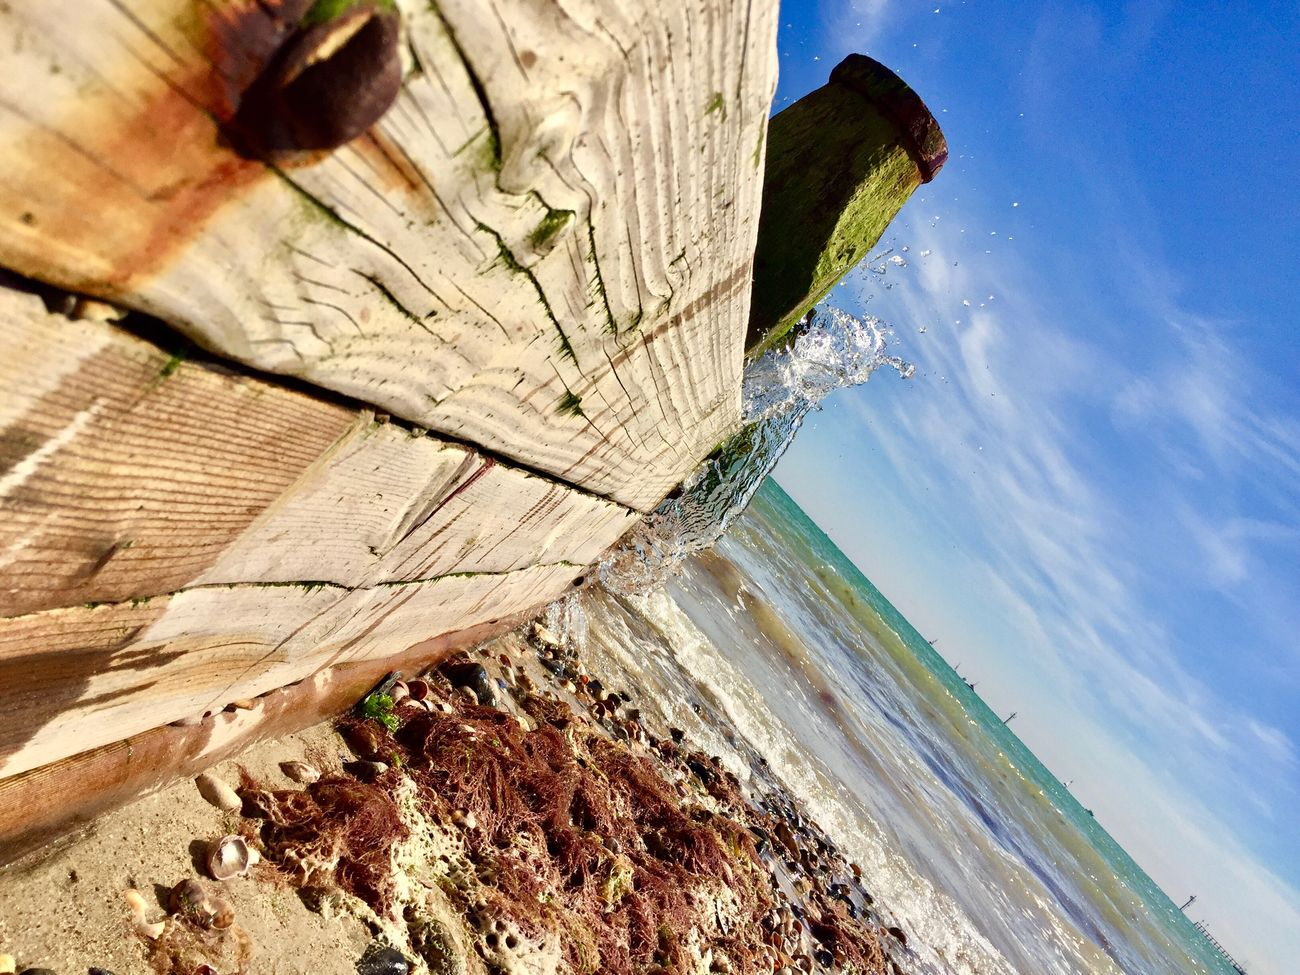 Textured  Close-up Splashing Water Splashing Waves ShotOniPhone6 Warm Wavebreak Wood - Material Power In Nature Beauty In Nature Outdoors Motion Day No People Wave Sea Water Low Angle View Colourful Sky Sunlight Blue Splash Beach